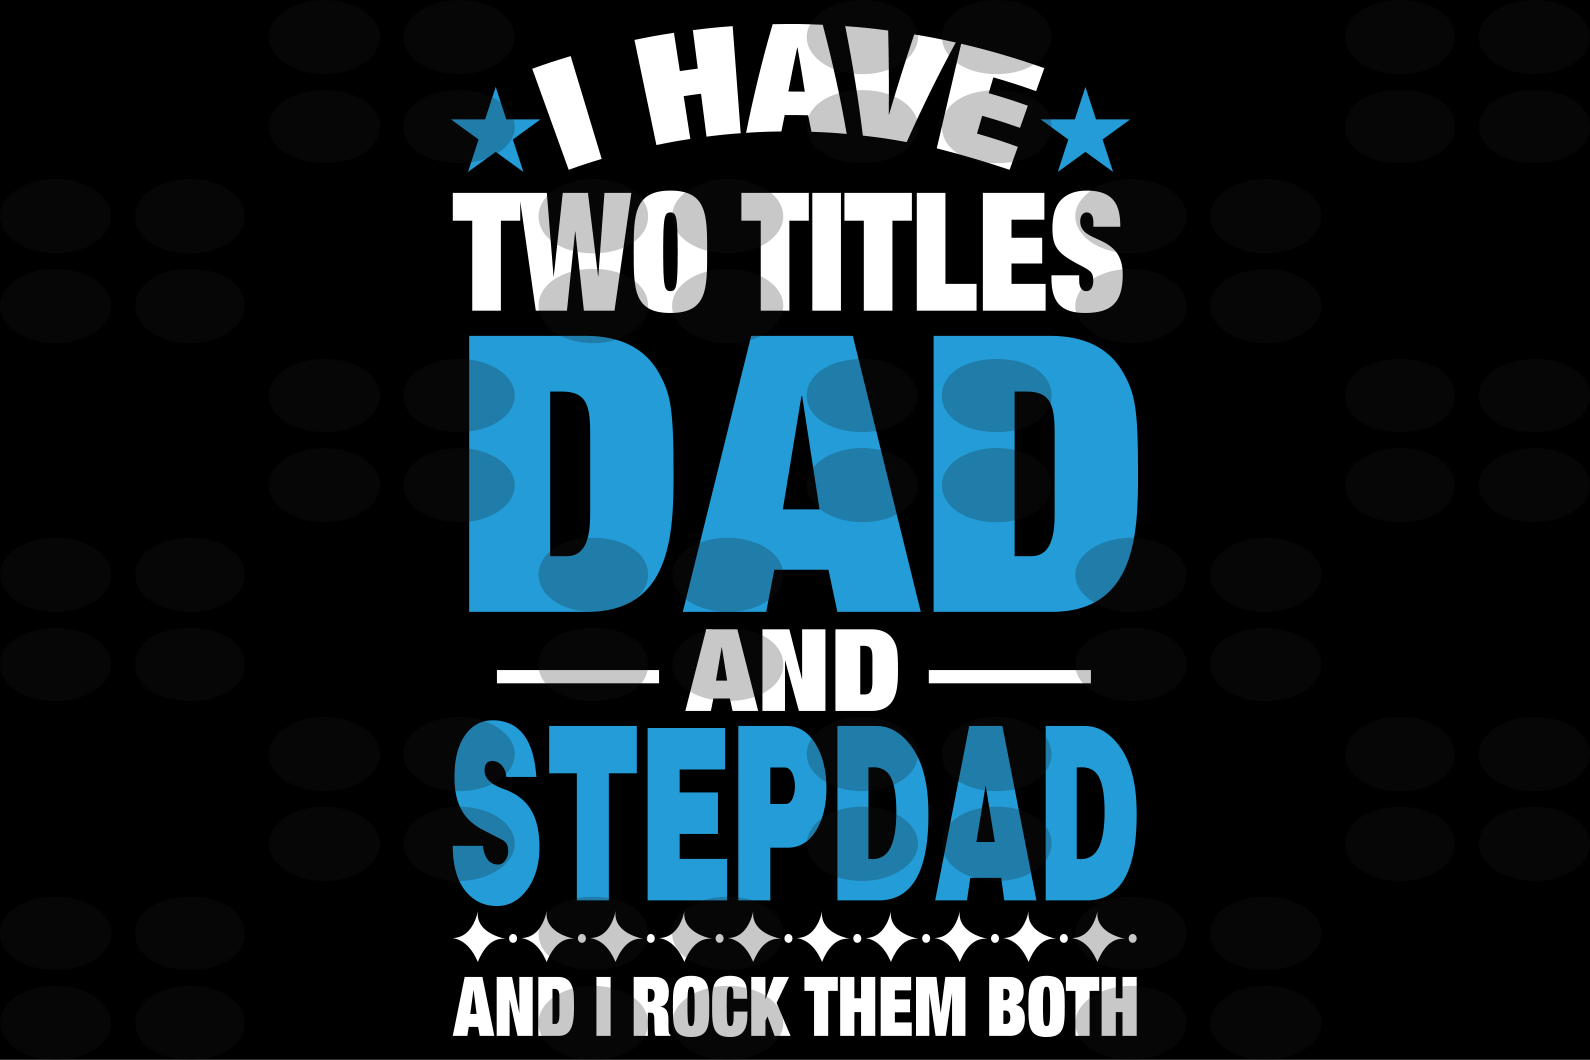 I have two titles dad and step dad svg,personalized svg,custom svg,fathers day, fathers day gift,dad and stepdad,dad svg,dad gift, step dad svg,dad shirt, gift for dad, dad birthday,shirt for stepdad, digital file,